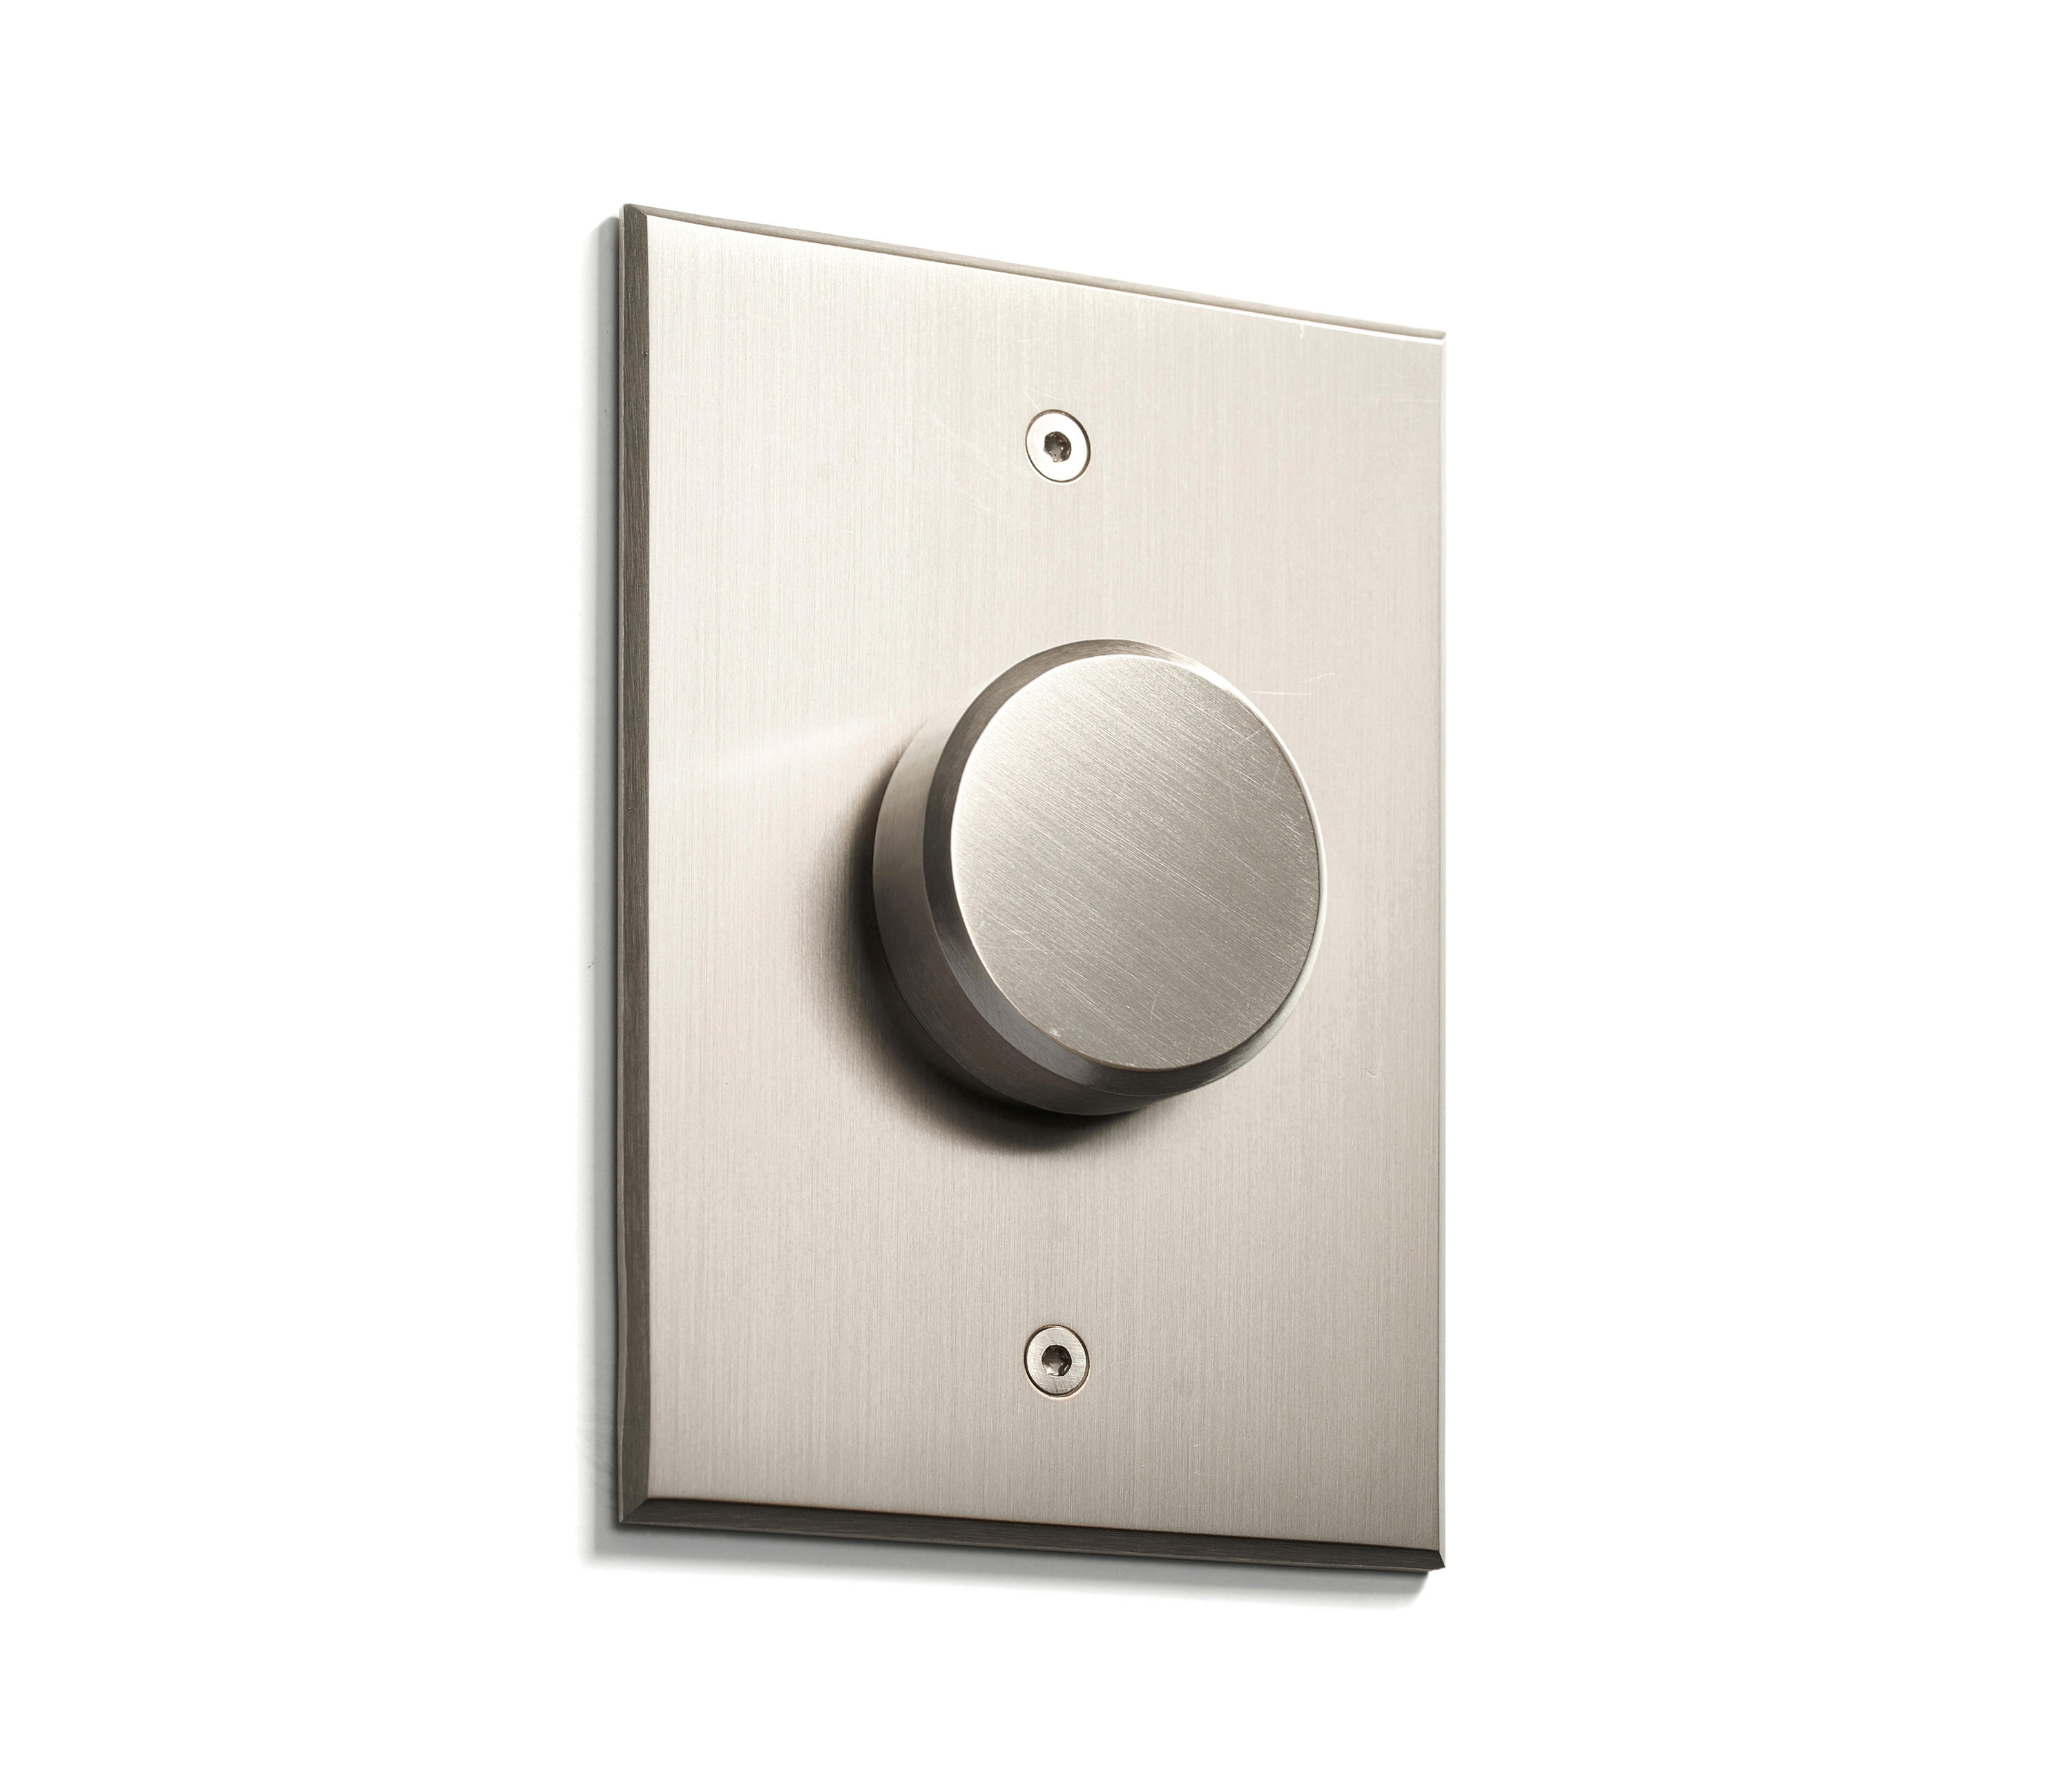 keypad rotary dimmer plate rotary dimmers from meljac distributed by lvl. Black Bedroom Furniture Sets. Home Design Ideas